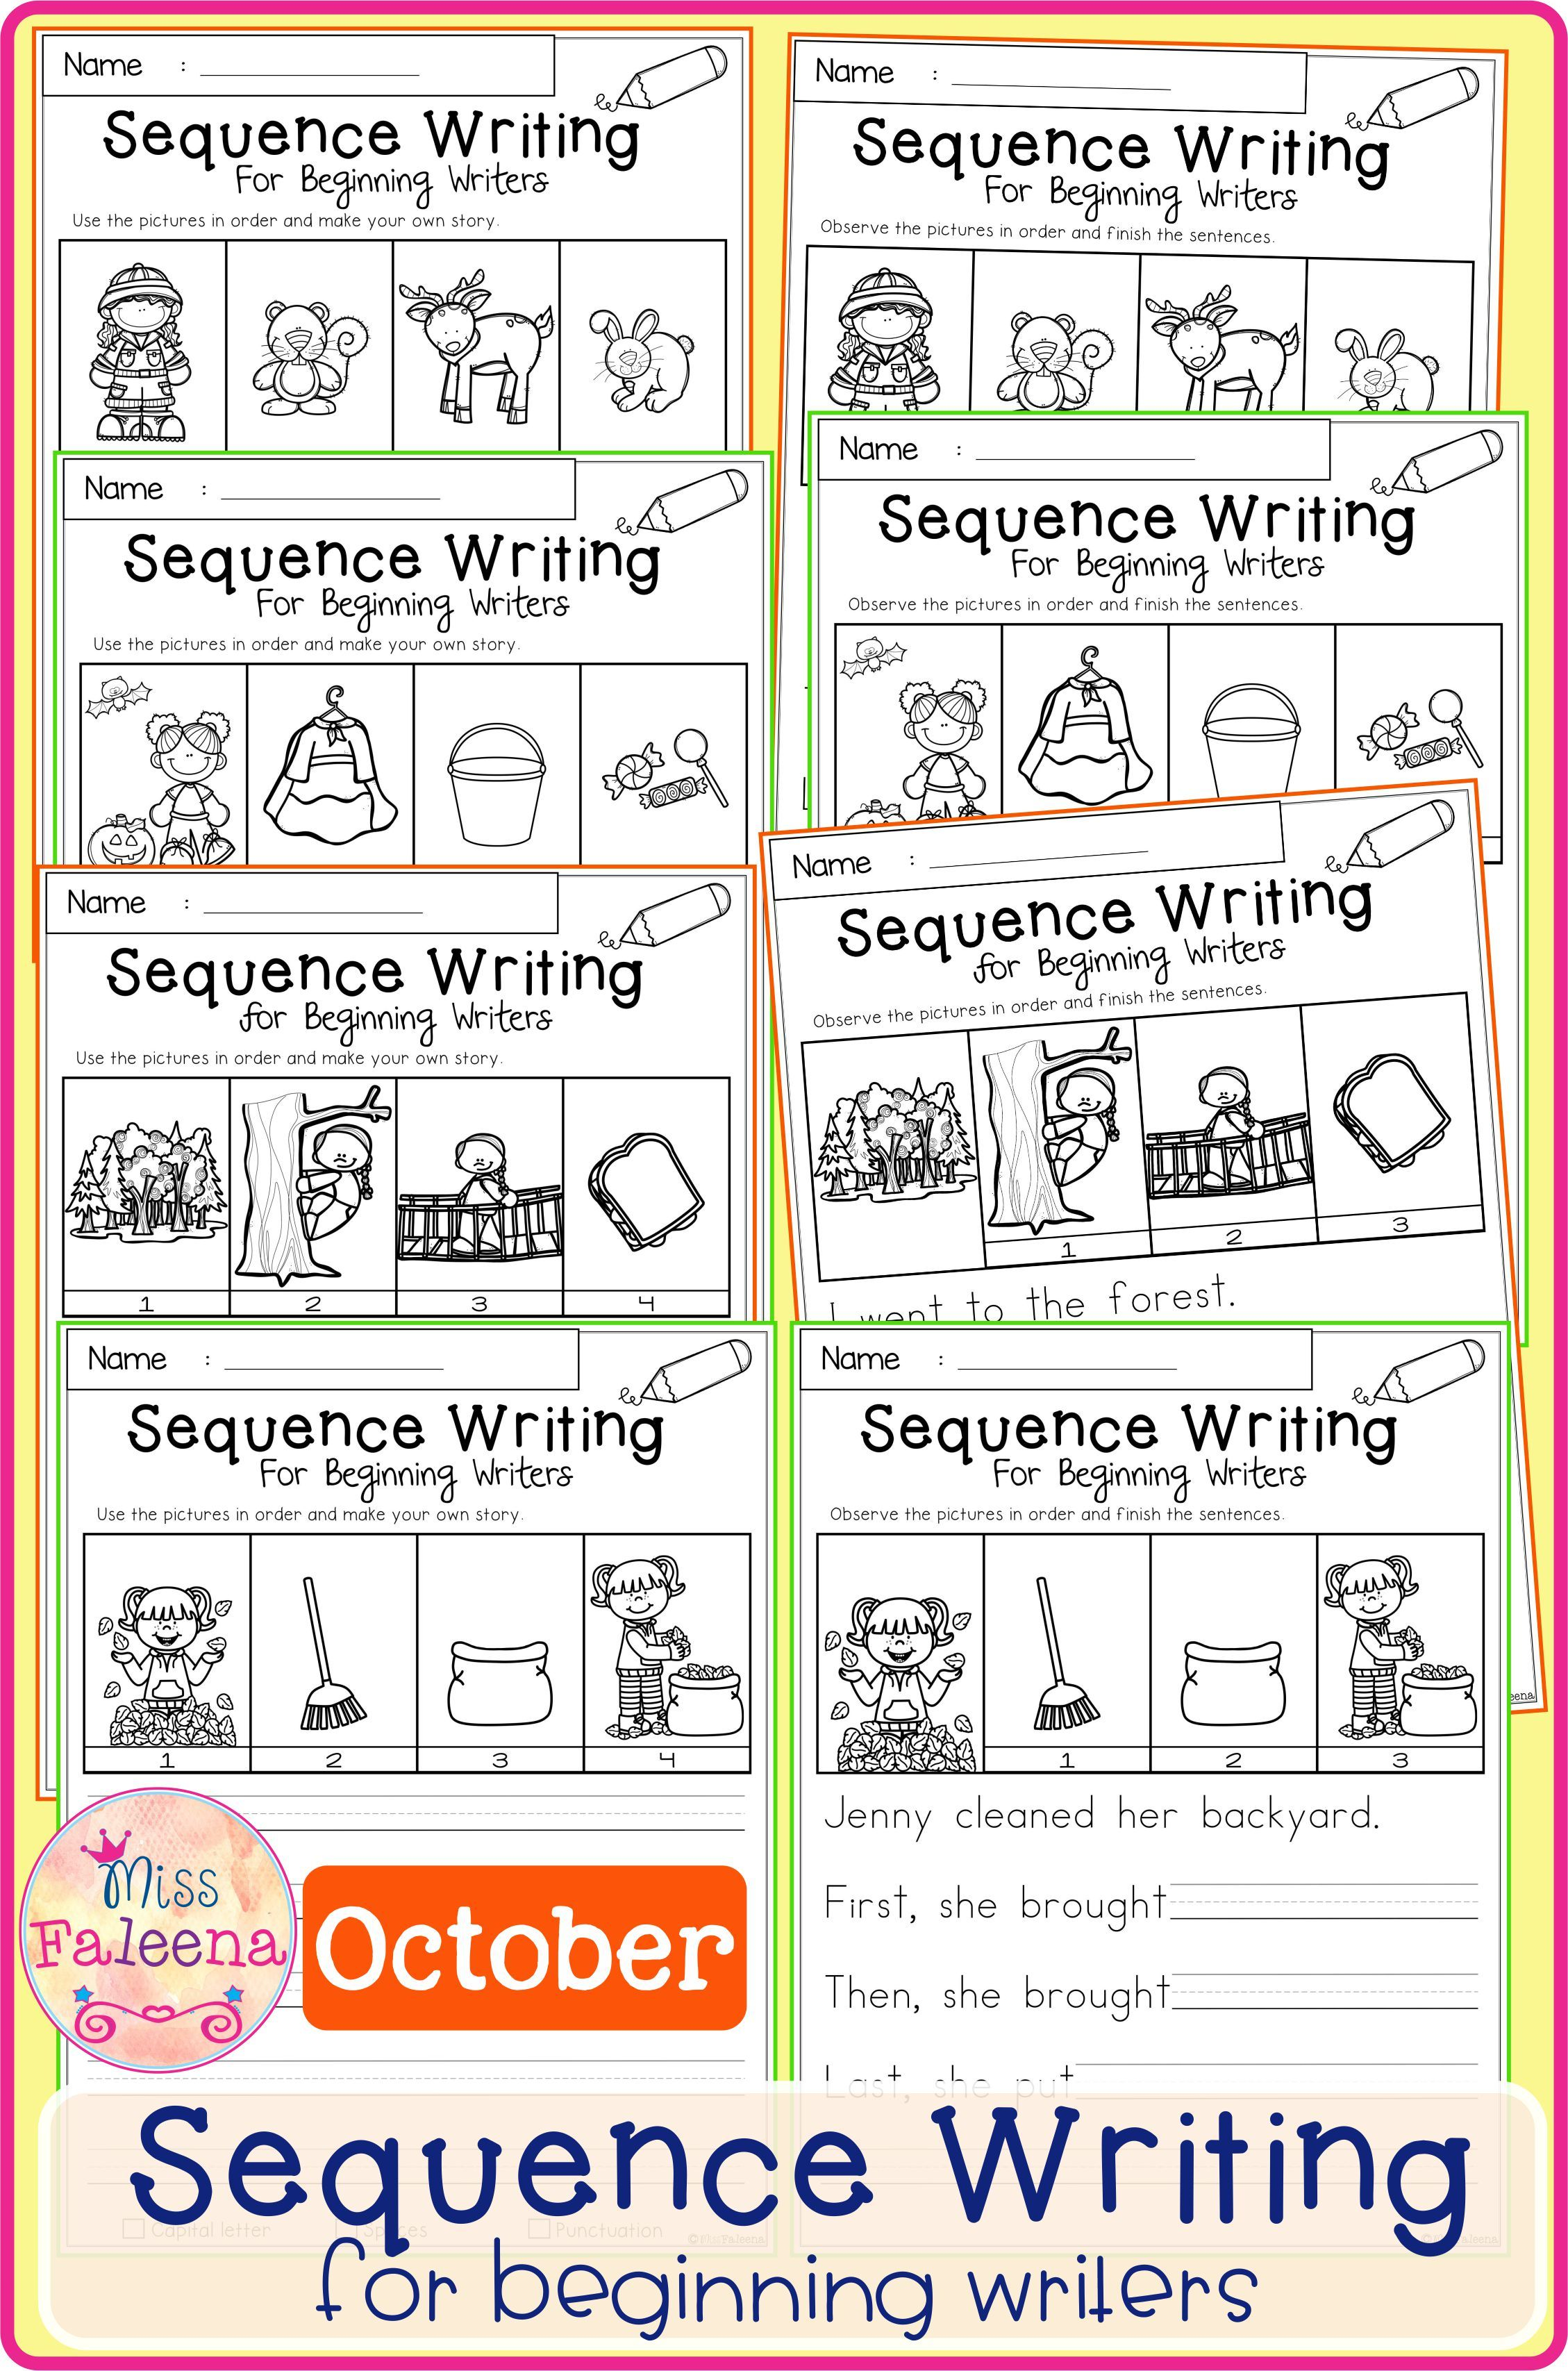 October Sequence Writing For Beginning Writers Sequence Writing Printable Writing Prompts Writing Bundle [ 3414 x 2258 Pixel ]